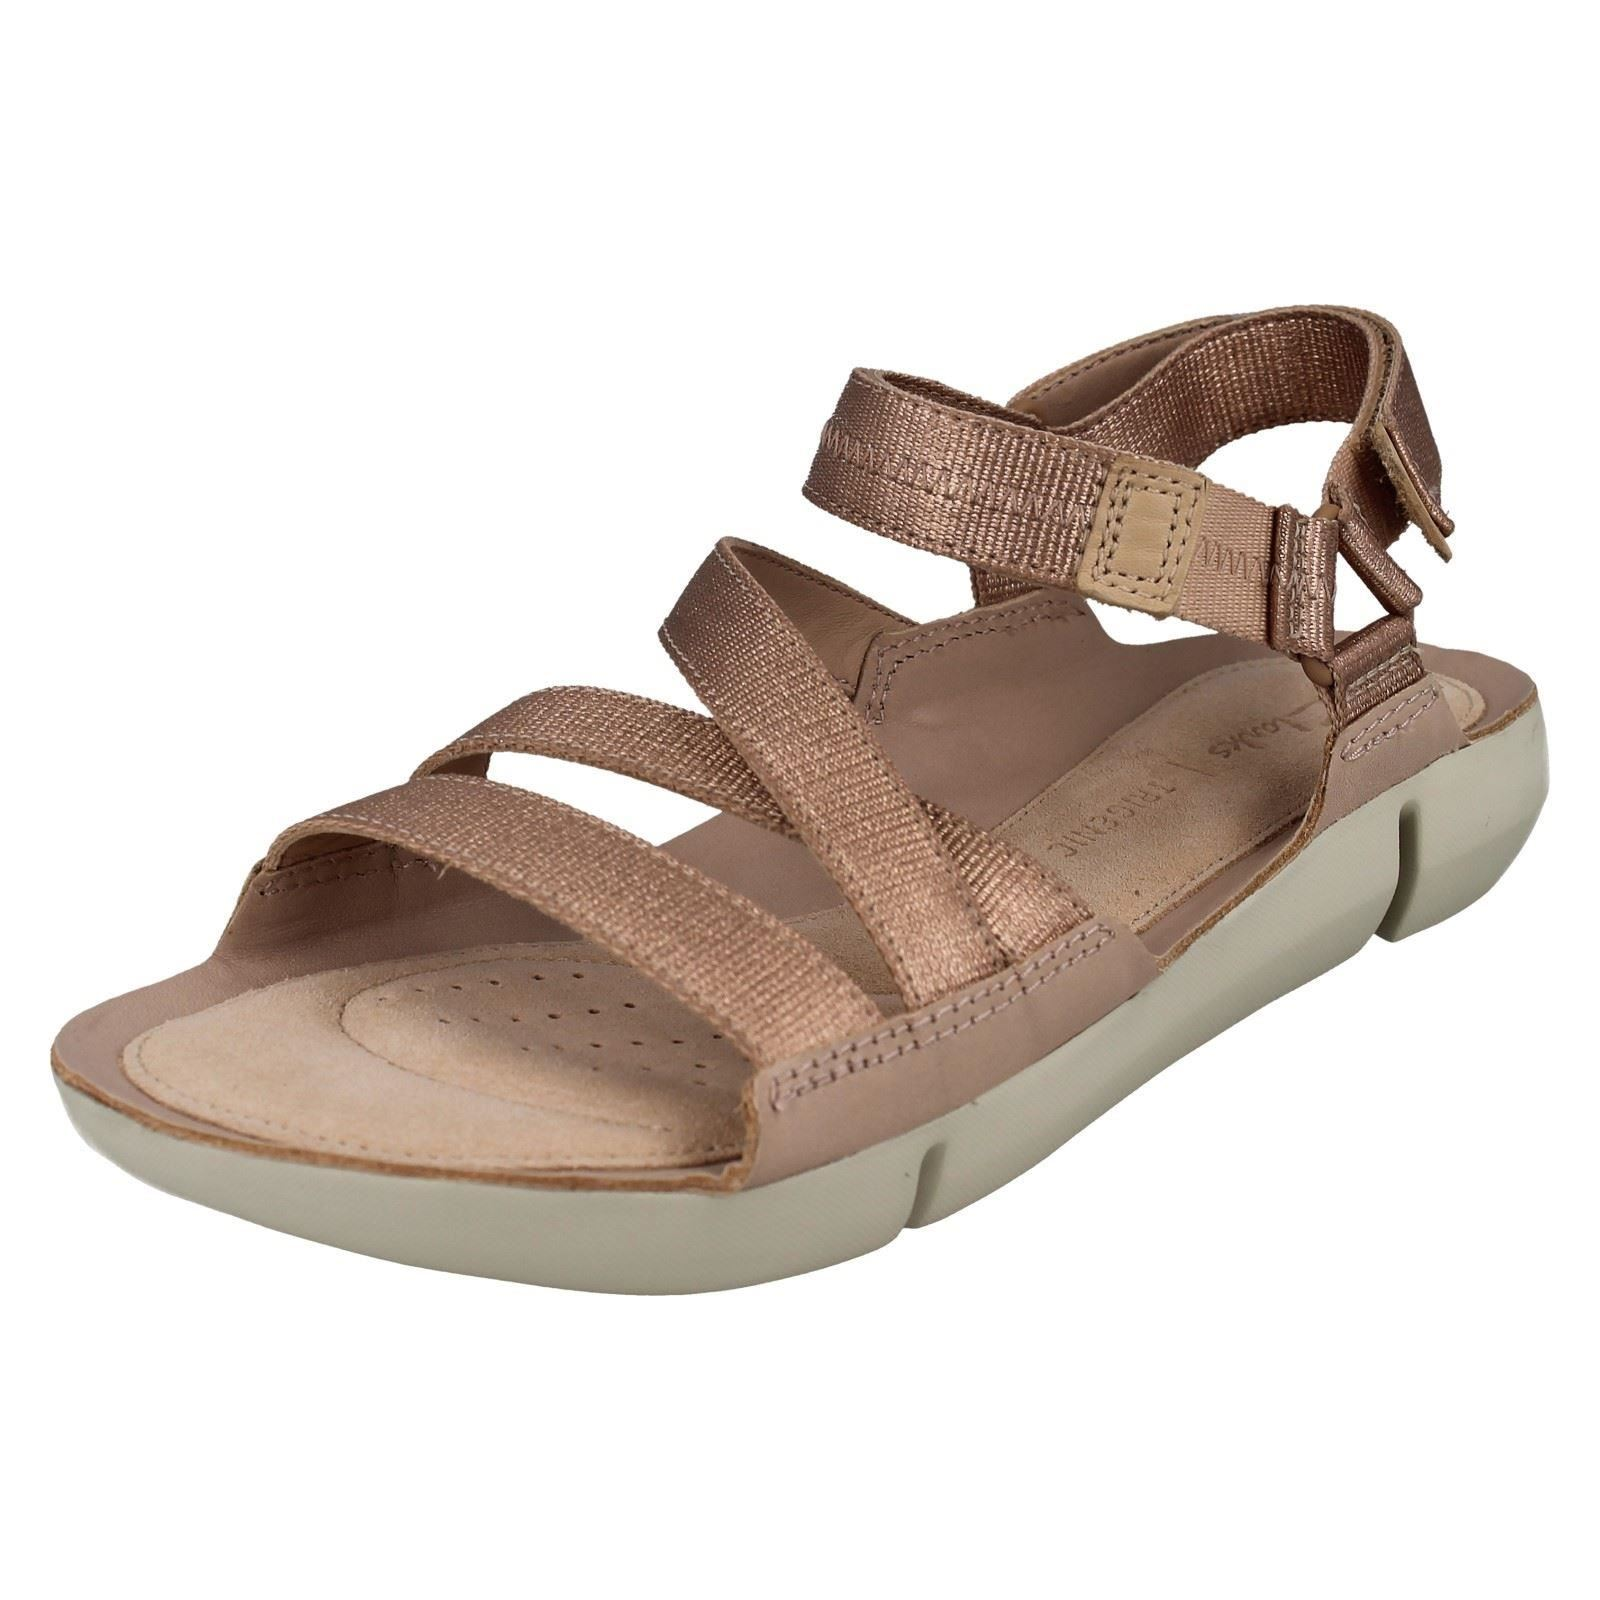 7abeac7c6fefd Women s Clarks Tri Sienna Strap Sandals in Pink UK 7   EU 41. About this  product. Picture 1 of 9  Picture 2 of 9 ...